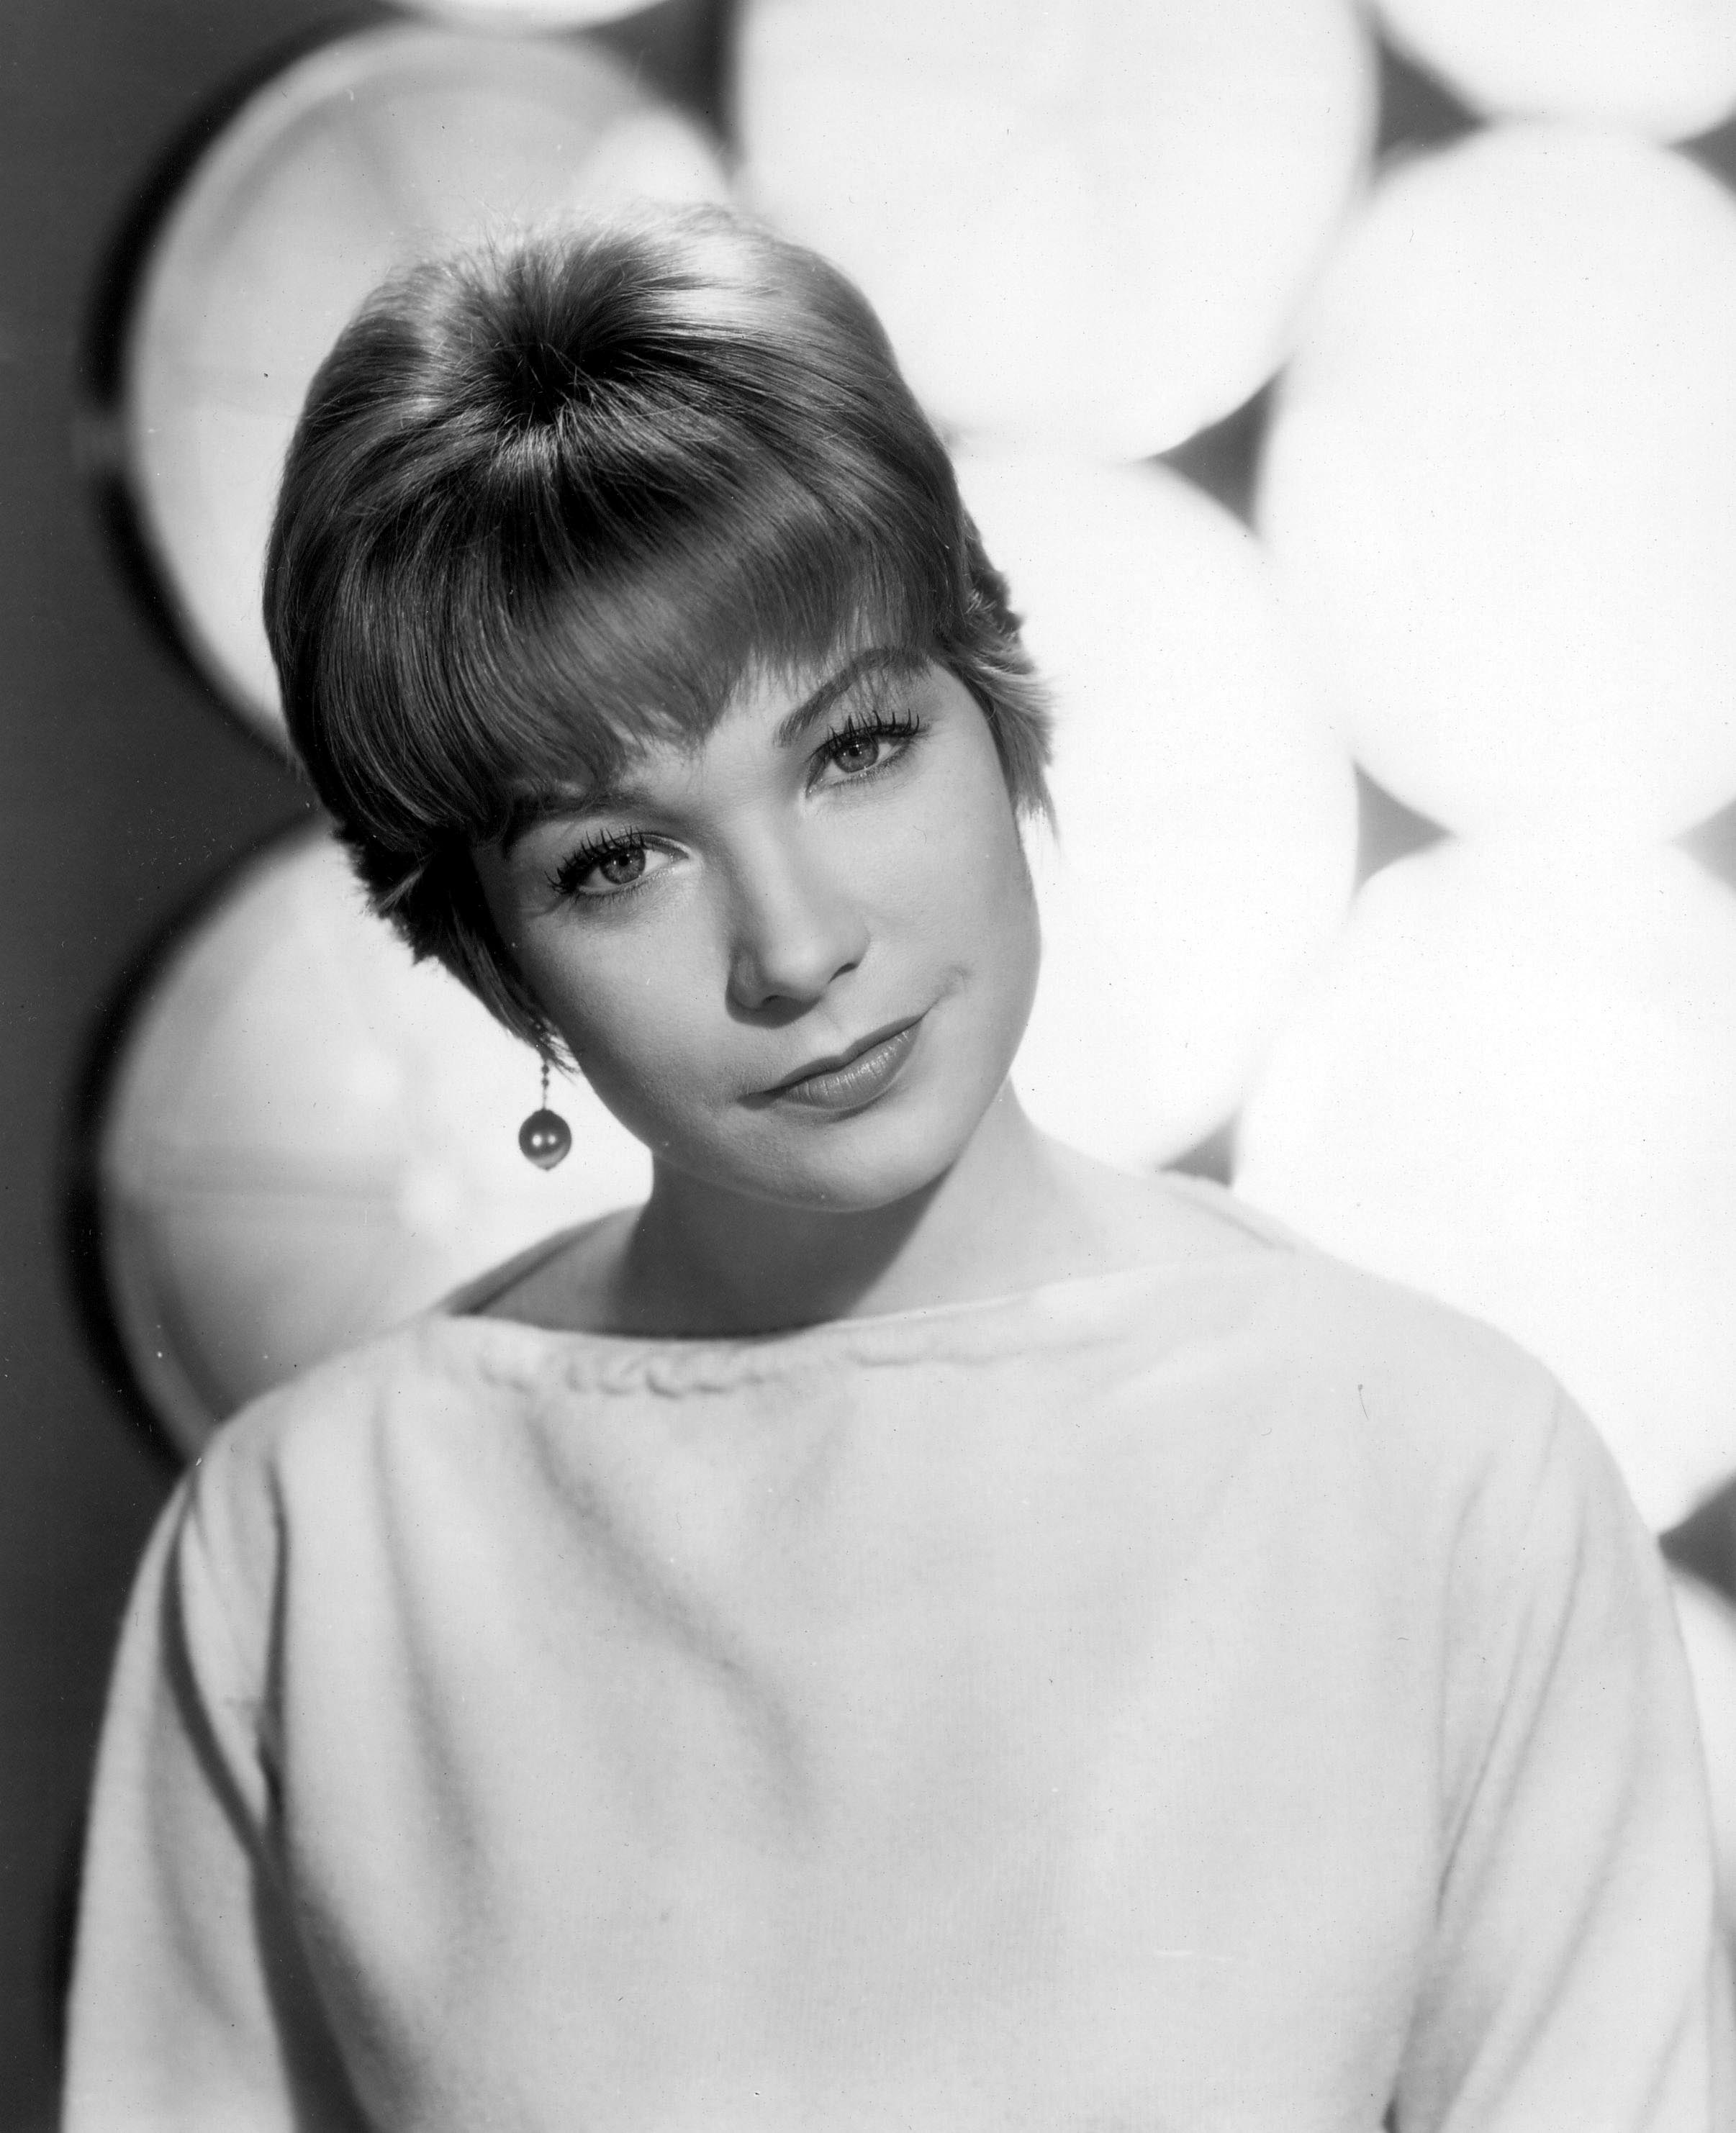 Communication on this topic: Haylee Roderick, shirley-maclaine/